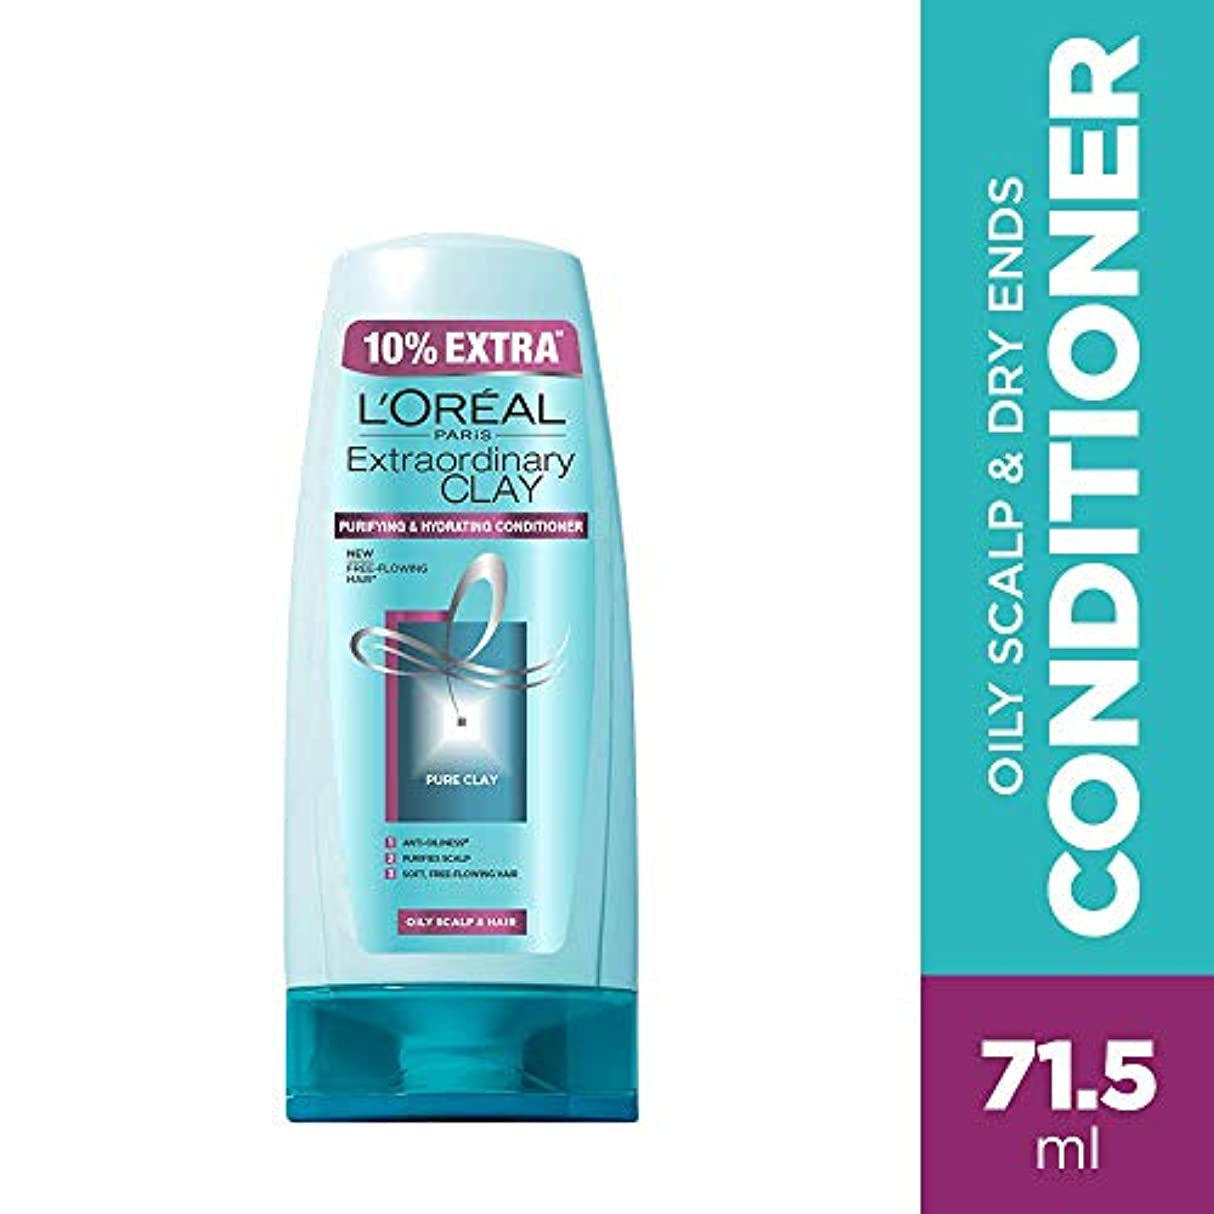 L'Oreal Paris Extraordinary Clay Conditioner, 65ml (With 10% Extra) (Loreal Ship From India)